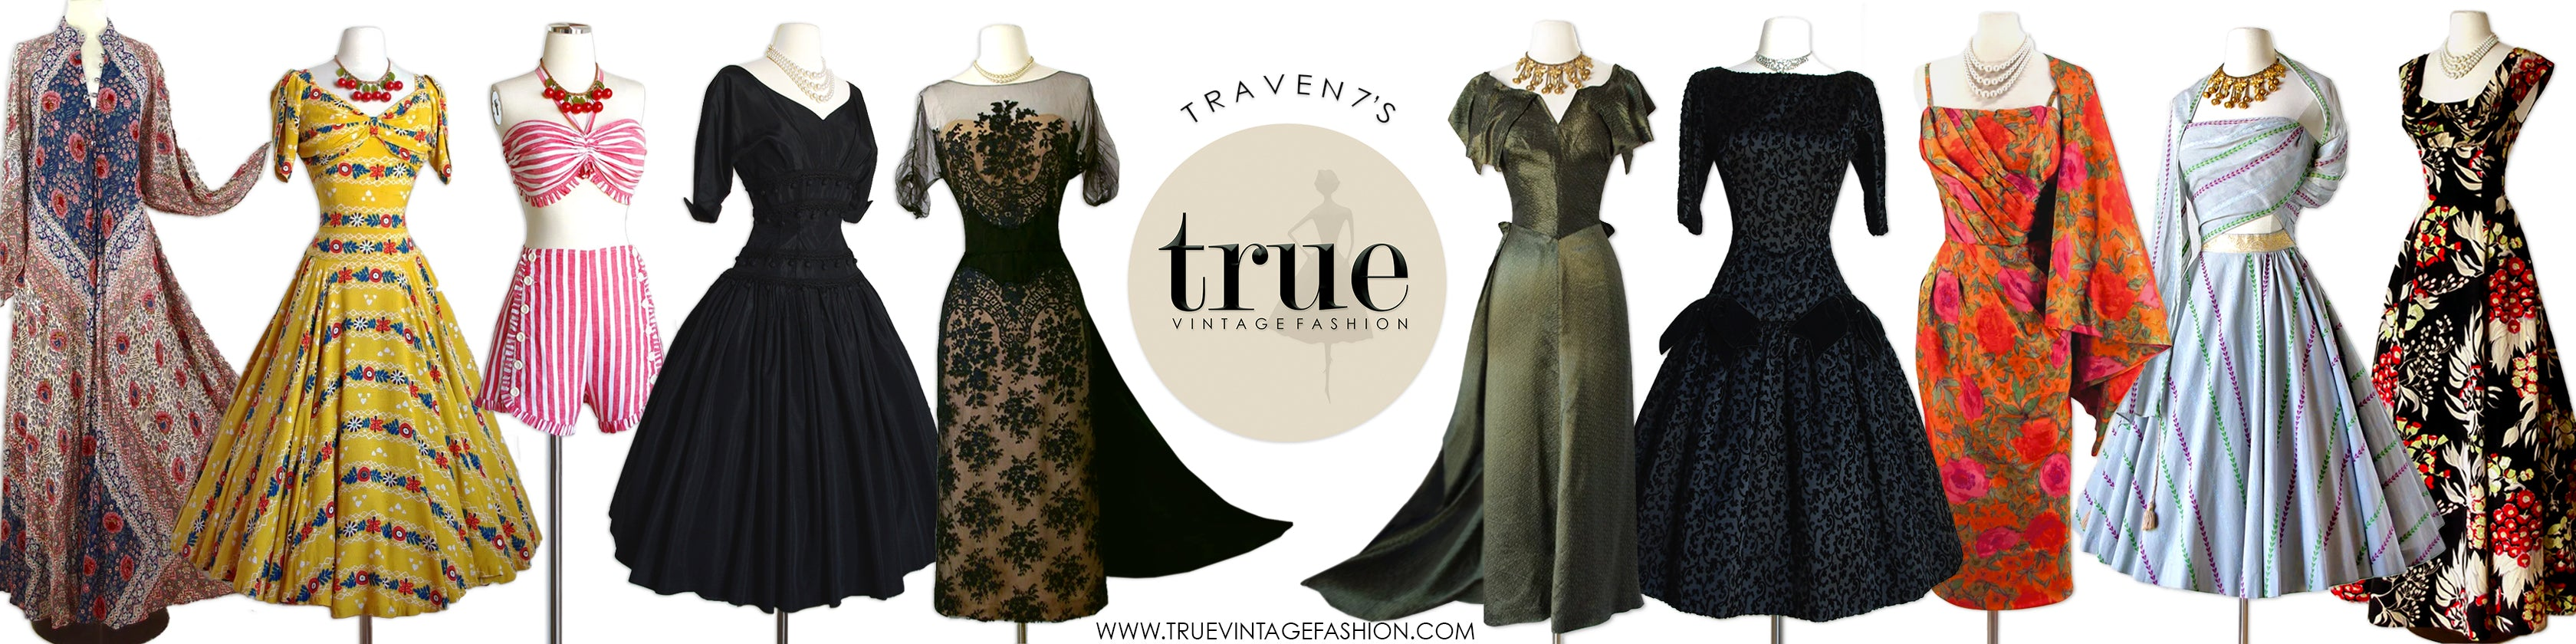 traven7's true vintage fashion